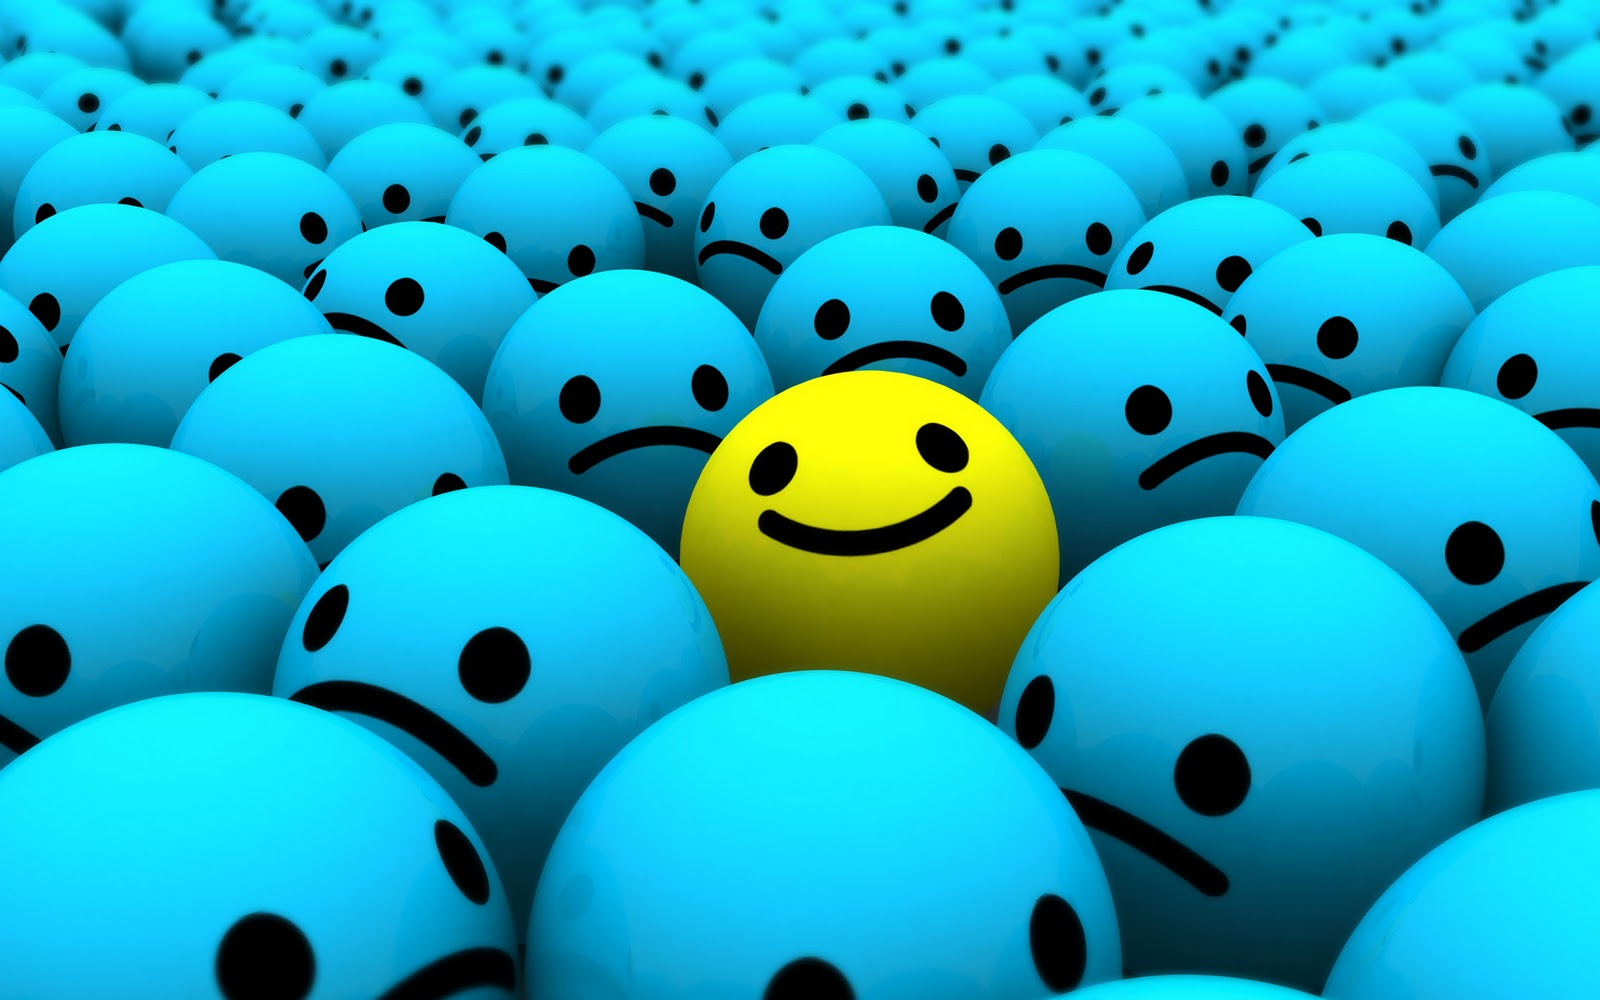 WallpaperfreekS: HD Smile (Emoticons) Wallpapers